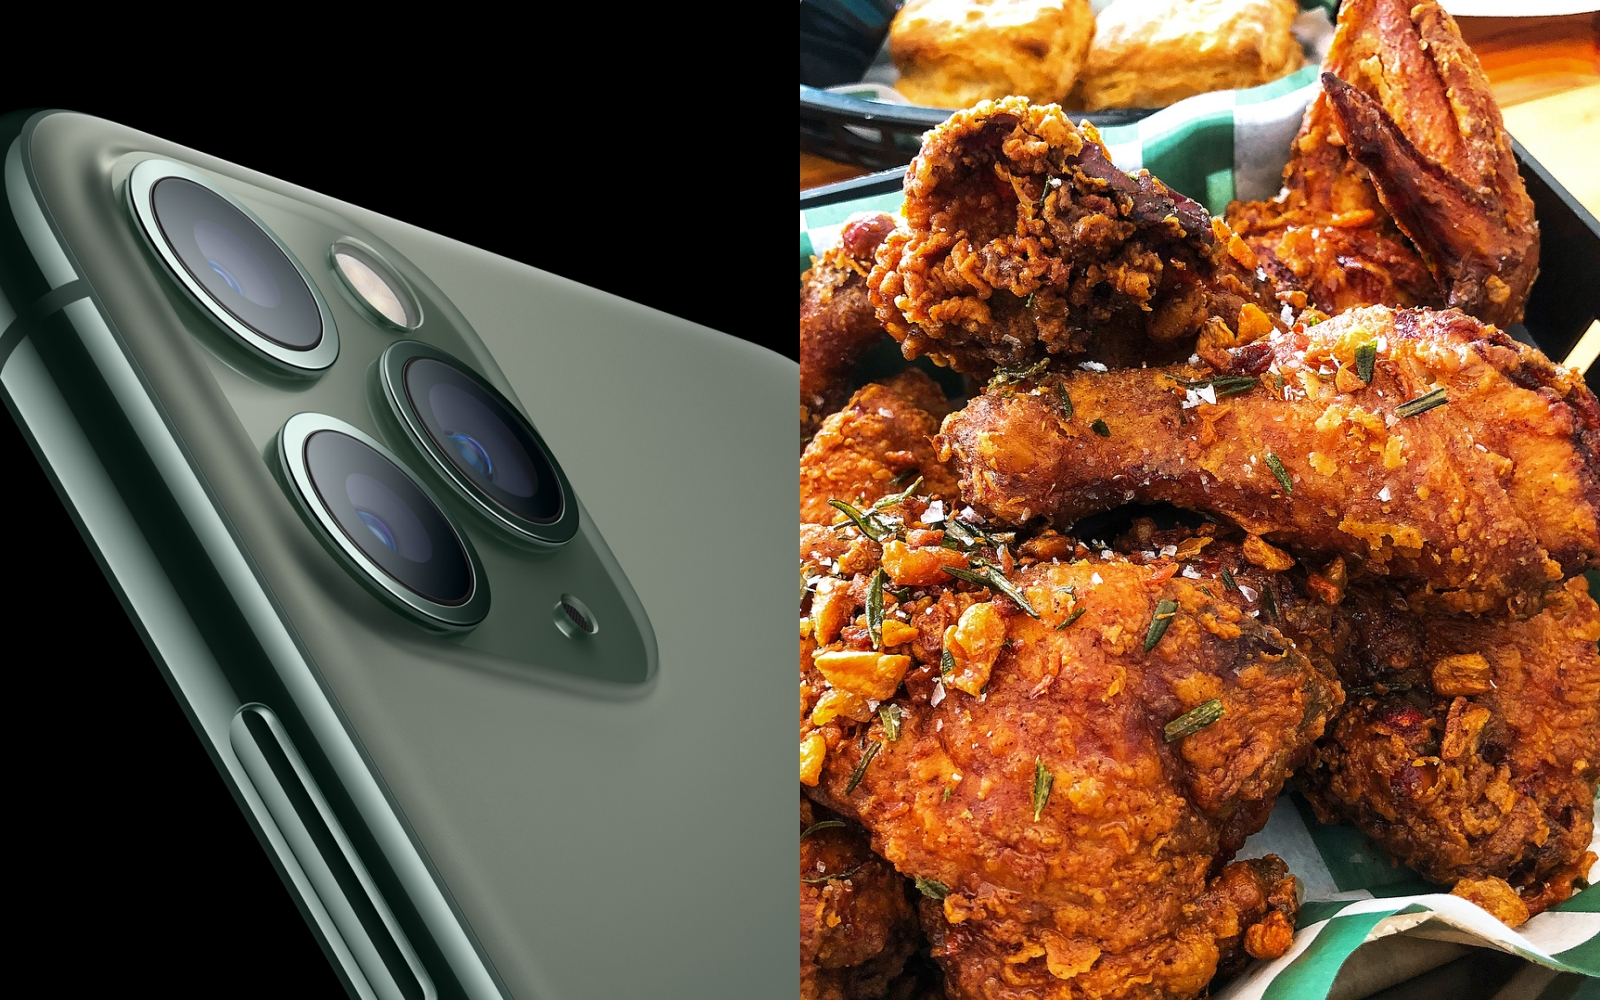 Diptych: new iPhone 11, and a close-up of fried chicken.